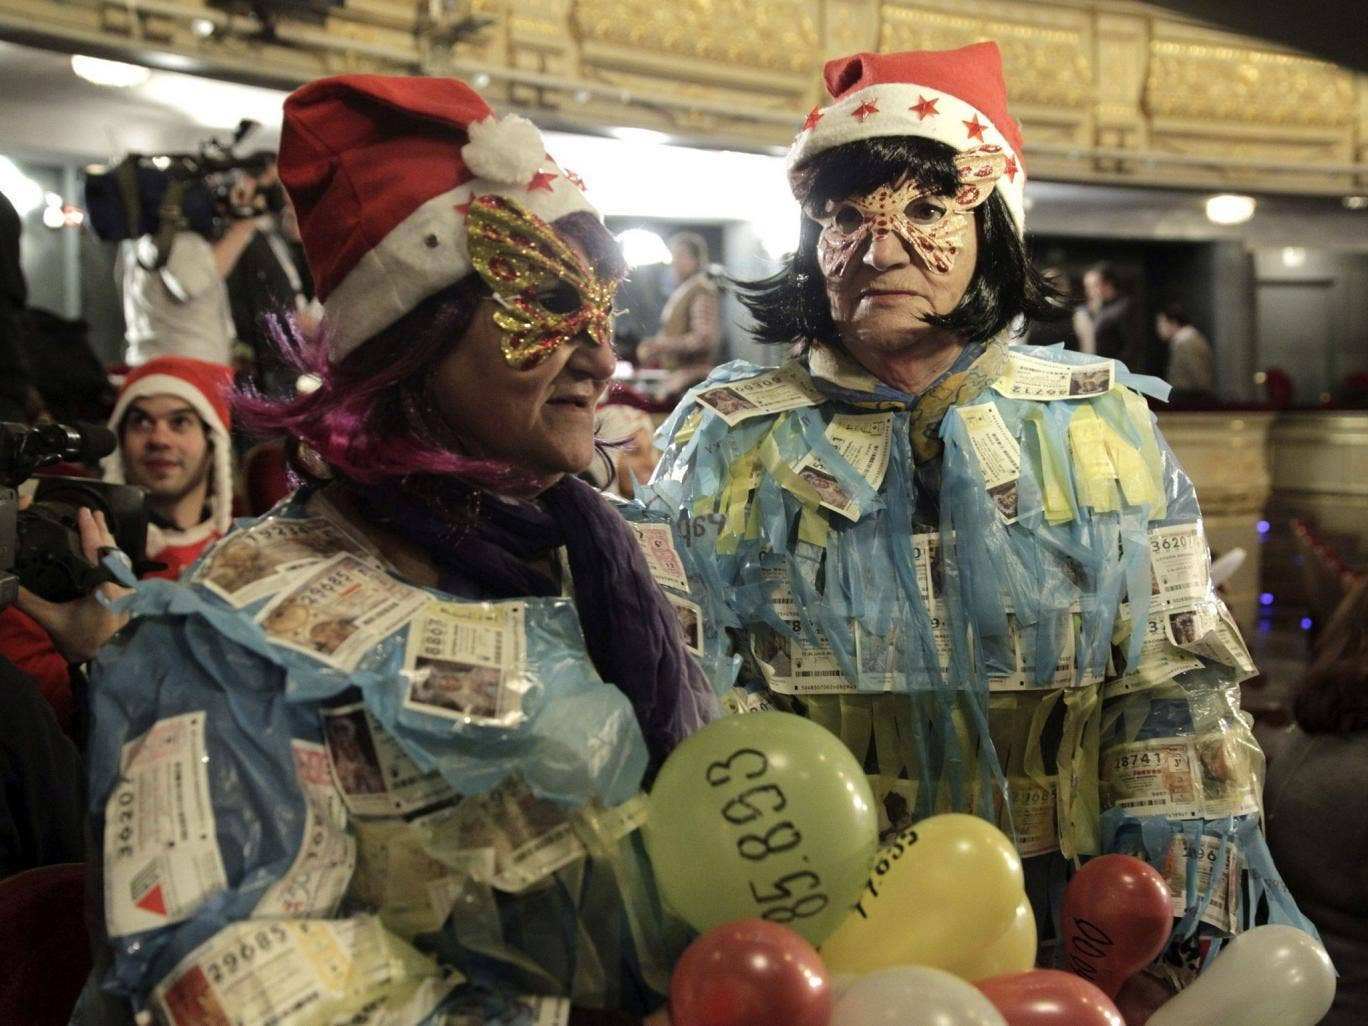 Two women display 'El Gordo' lottery tickets on their bodies as they wait for the beginning of the draw at Madrid's Teatro Real